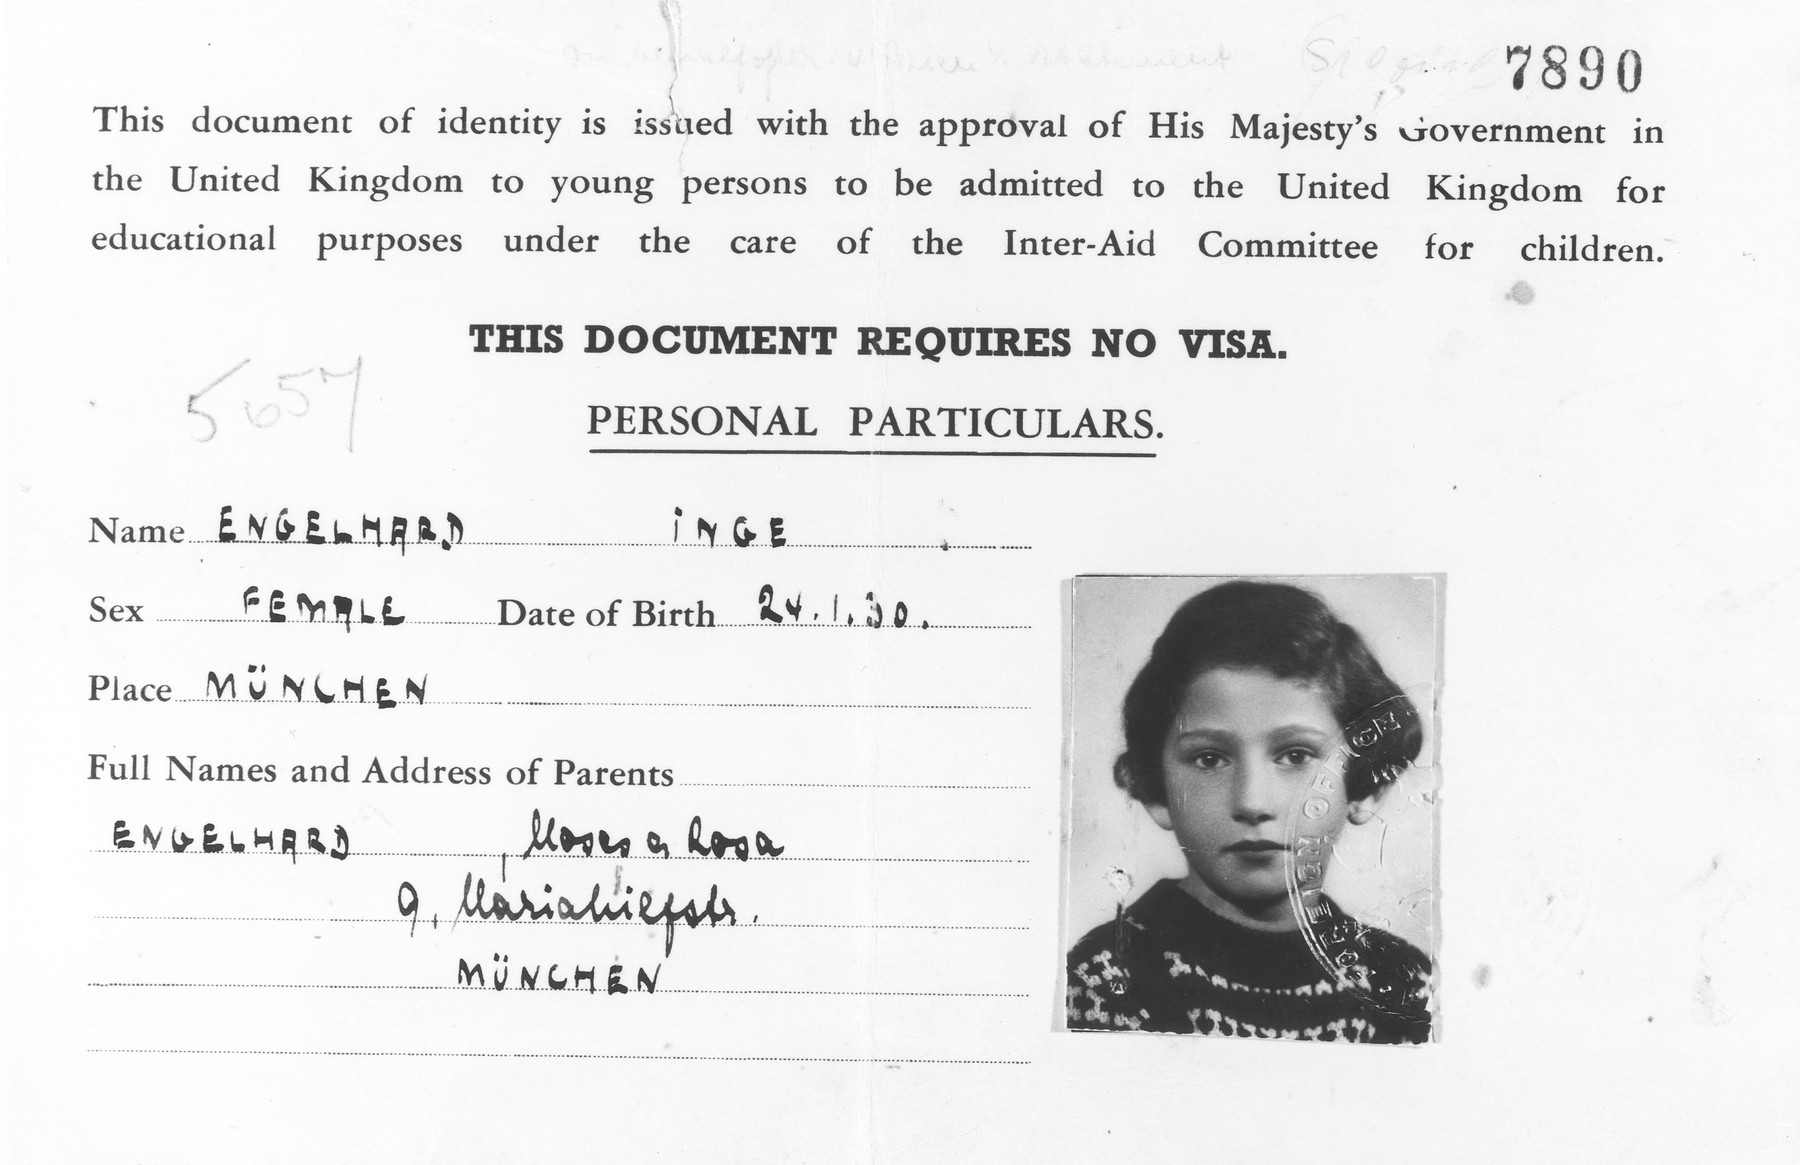 Identification card issued to Inge Engelhard, a German Jewish refugee child, permitting her to be admitted to the United Kingdom under the care of the Inter-Aid Committee for children.